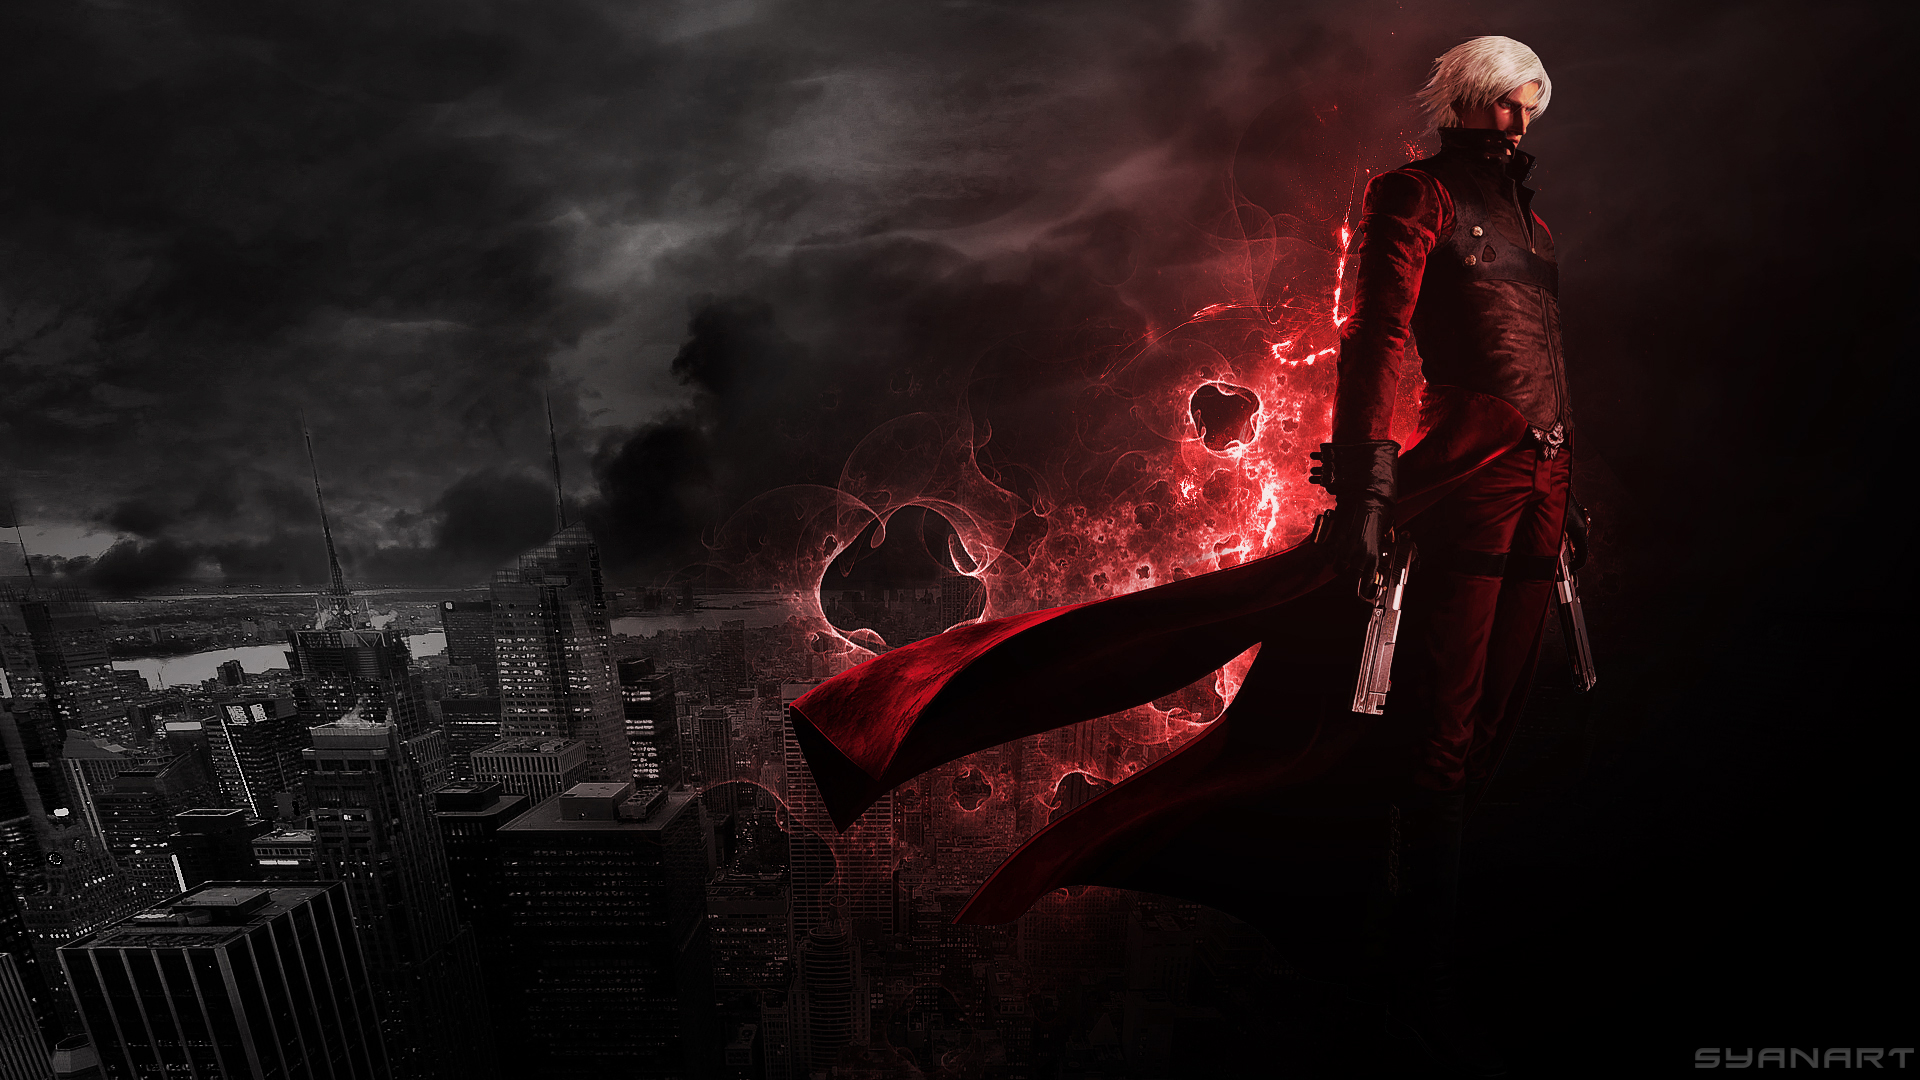 Devil May Cry 2 Dante Devil May Cry 2 Wallpaper 39186920 Fanpop